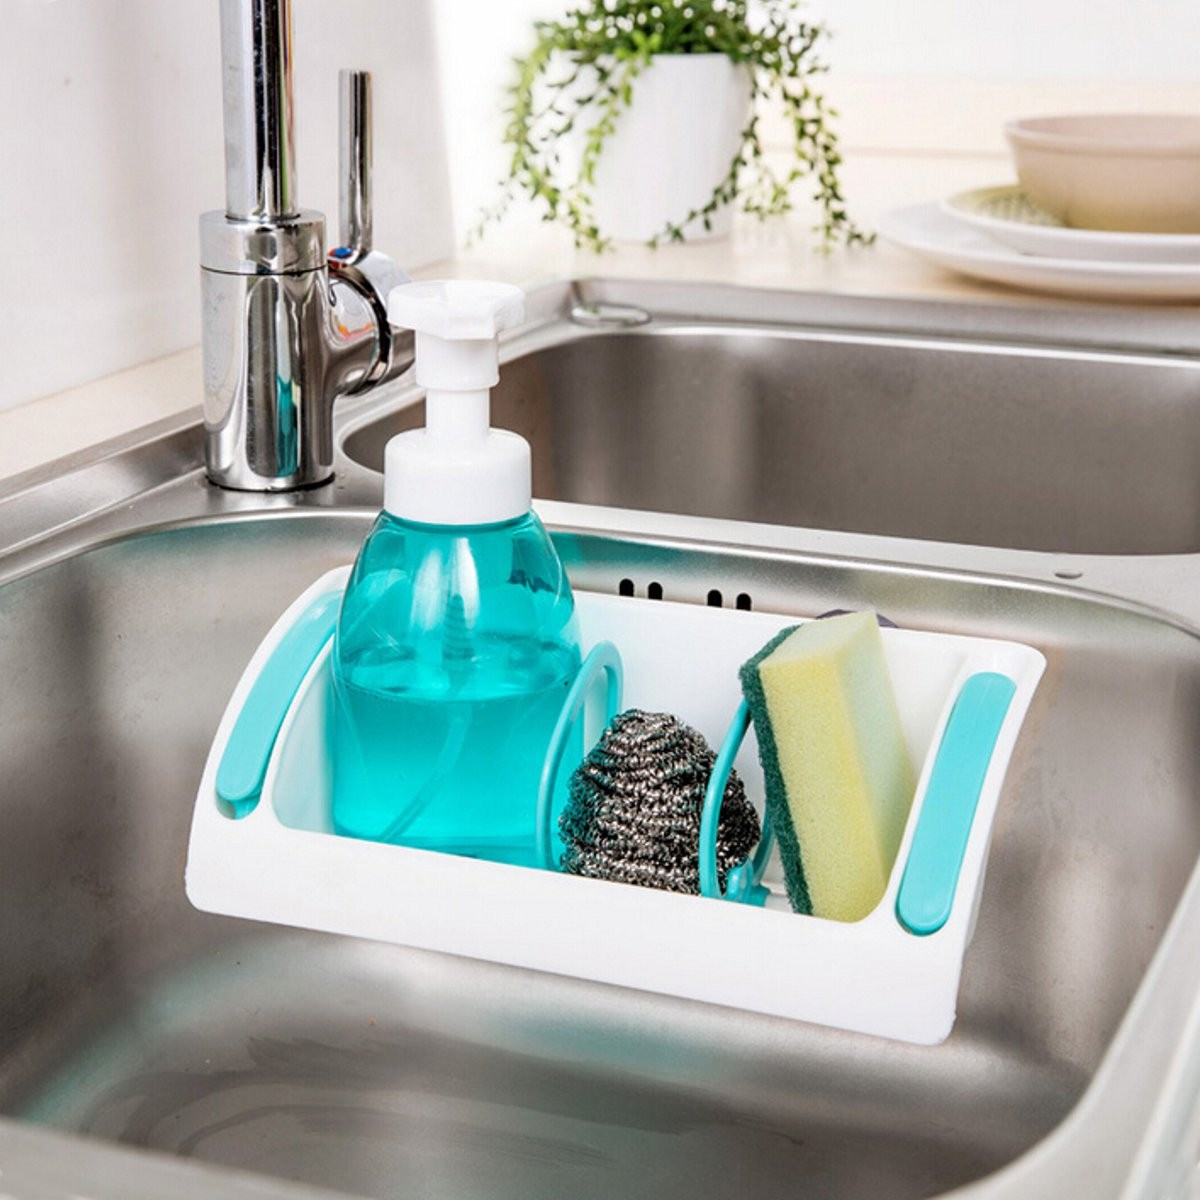 1Pcs Kitchen Sink Suction Cup Bathroom Storage Shelf Rack Home ...